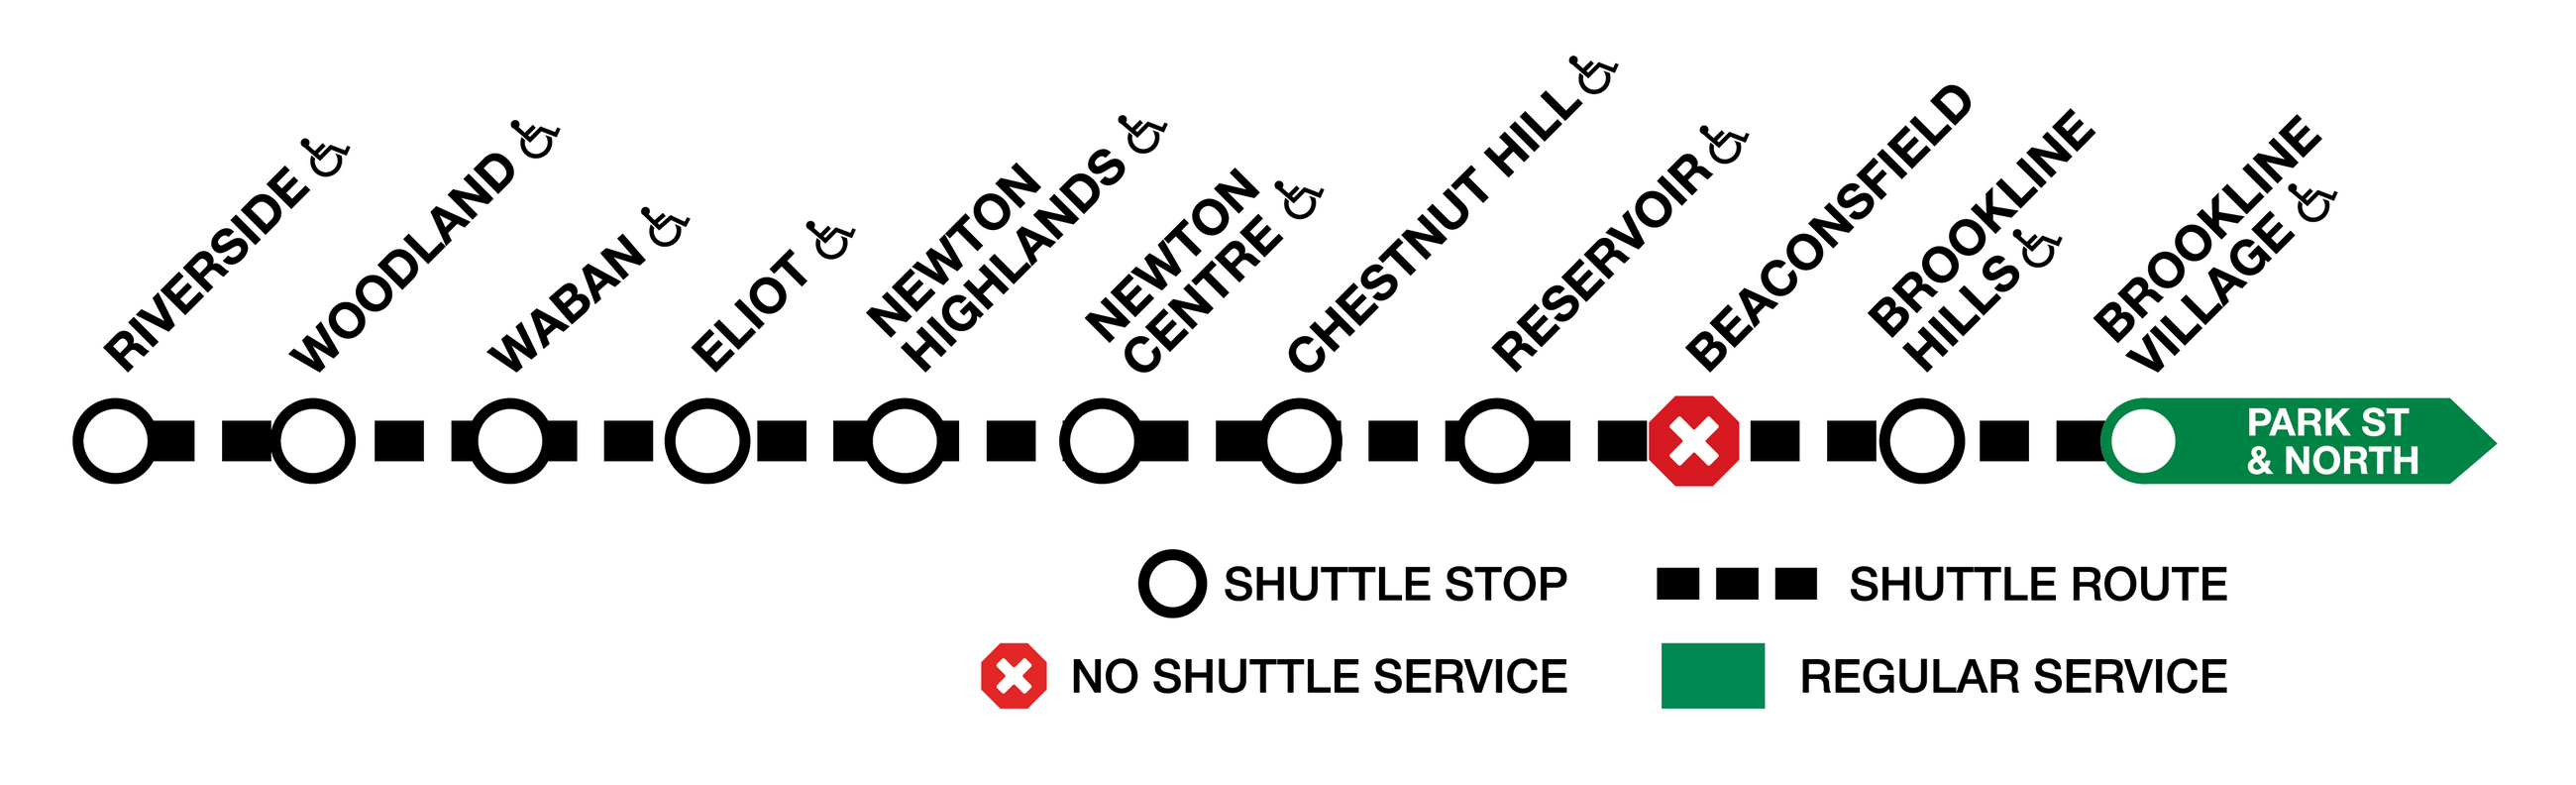 Bus shuttles run between Riverside and Brookline Village, with no shuttle service at Beaconsfield